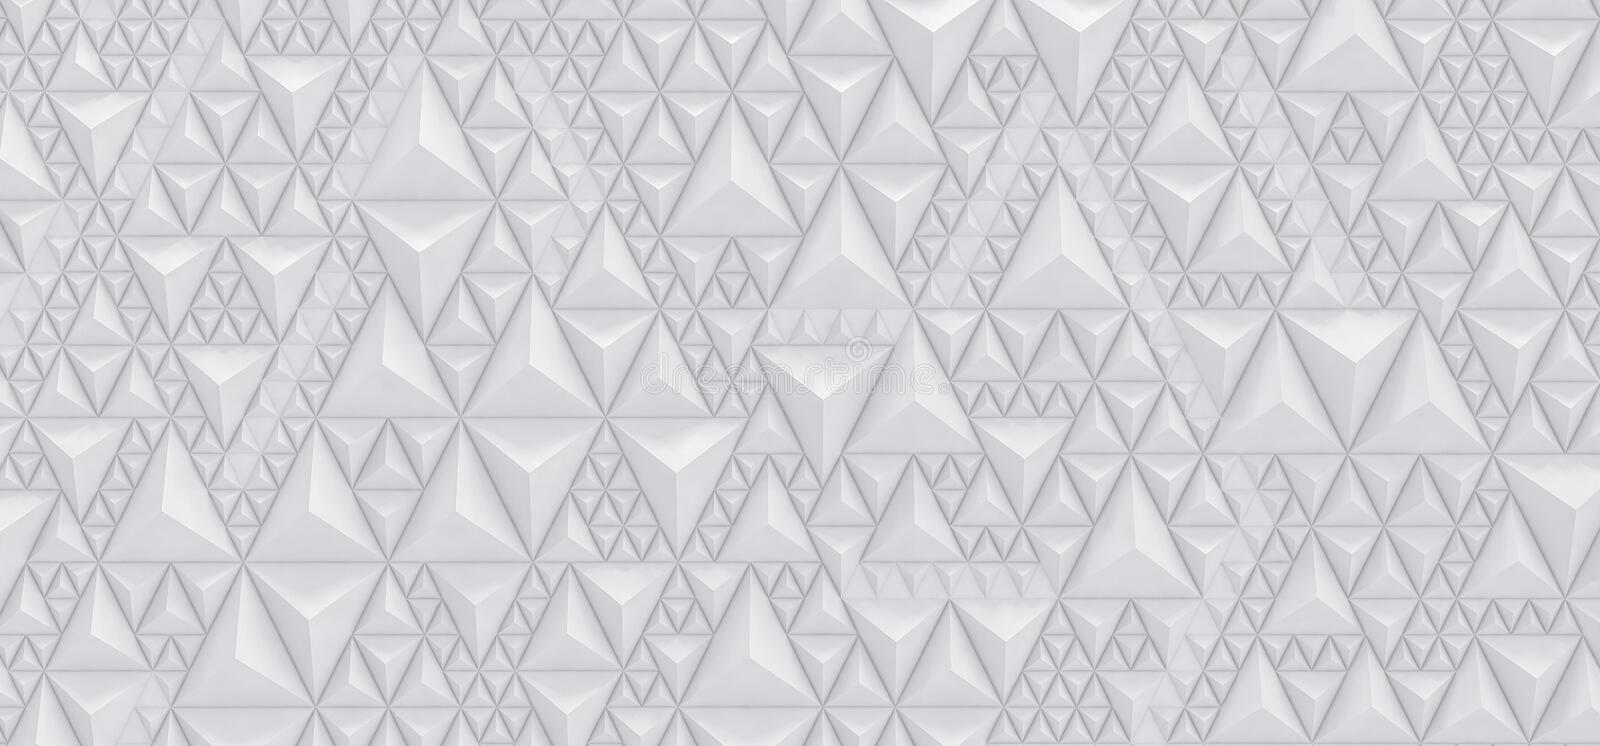 Embossed white background of triangles - 3D illustration royalty free illustration